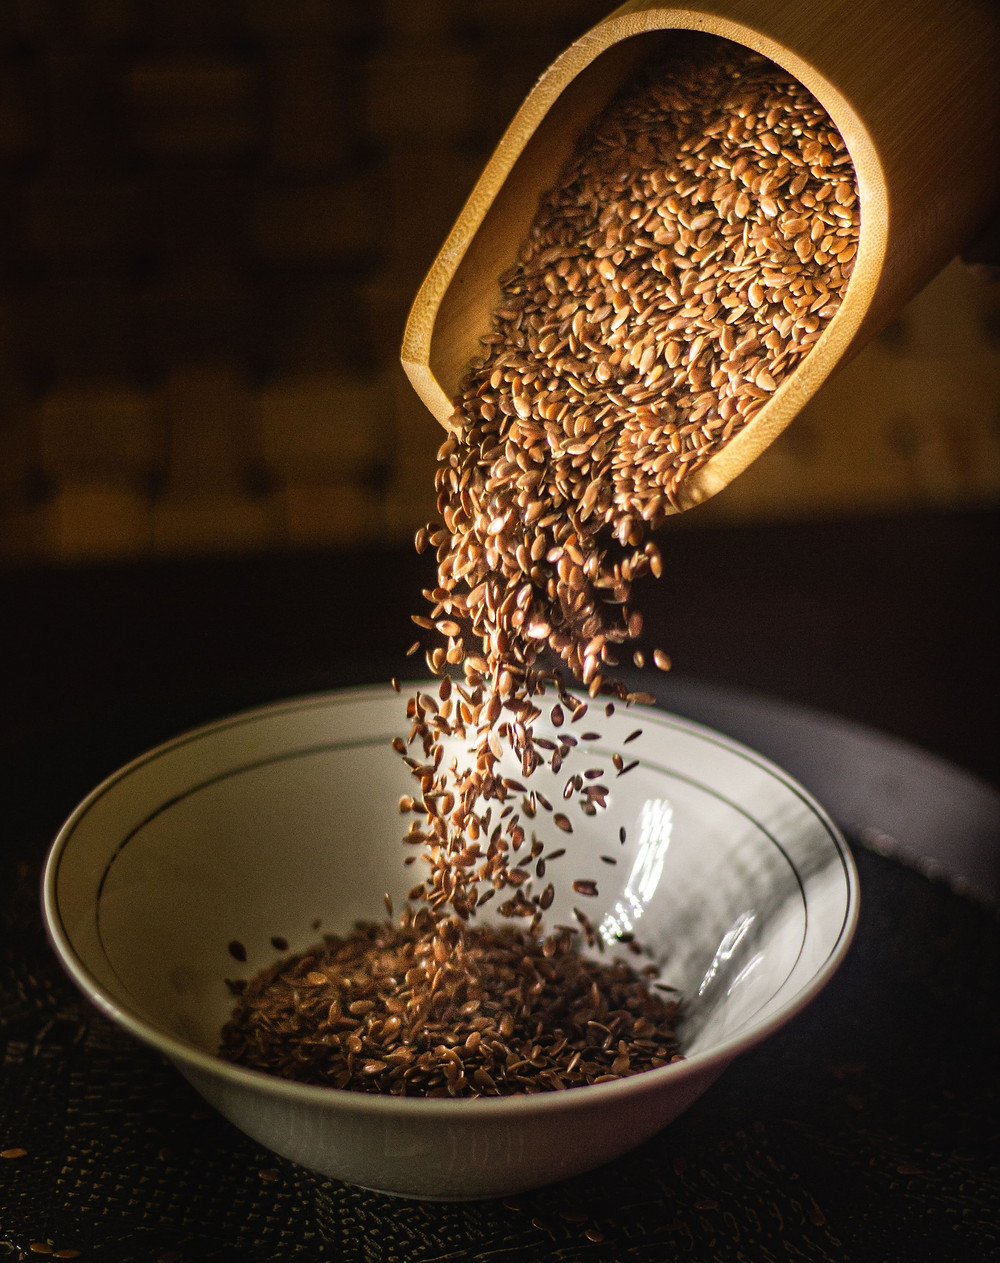 Somebody putting flax seeds into a bowl.